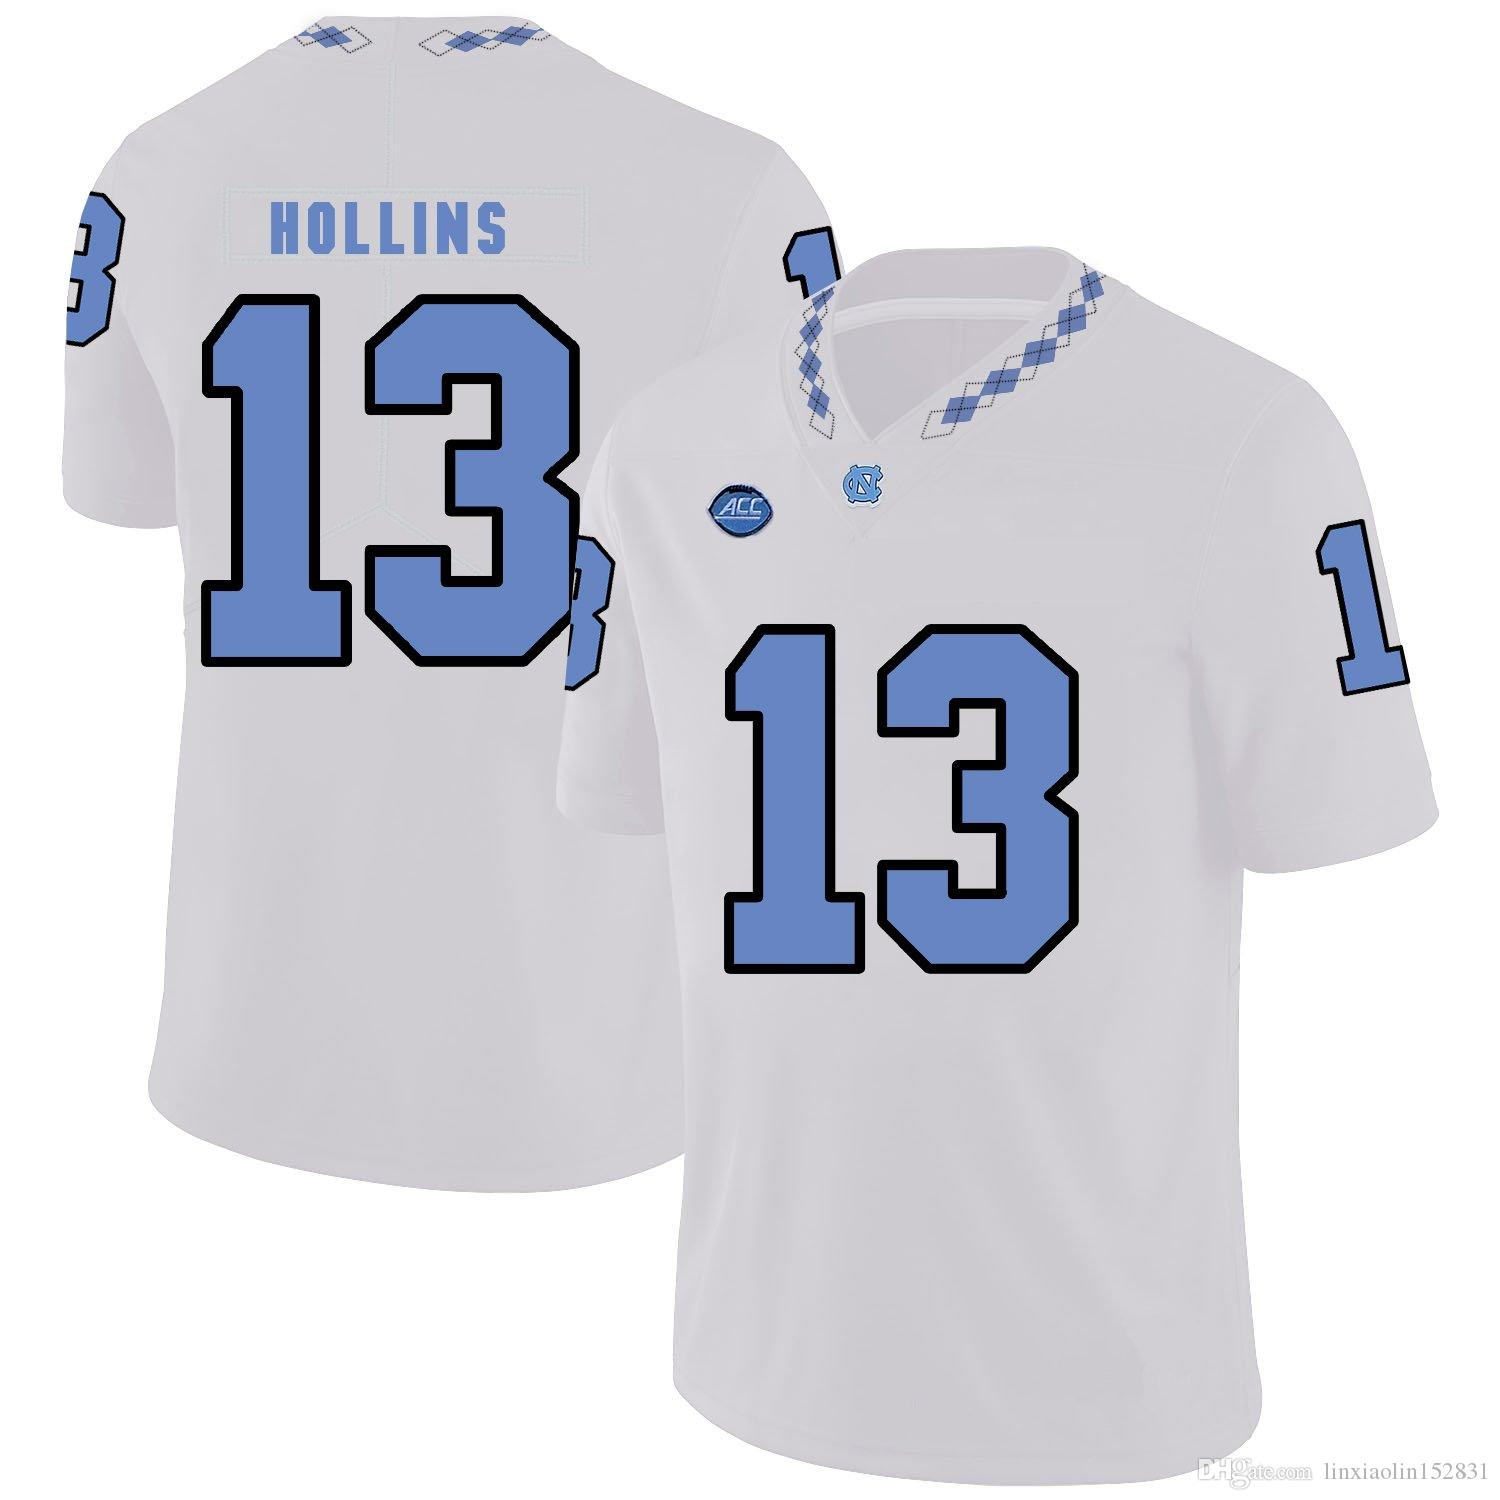 lowest price 5a490 47061 2019 Mack Hollins Stitched Mens North Carolina Tar Heels Mitchell Trubisky  Michael Carter NCAA College Game Jersey From Linxiaolin152831, &Price; | ...